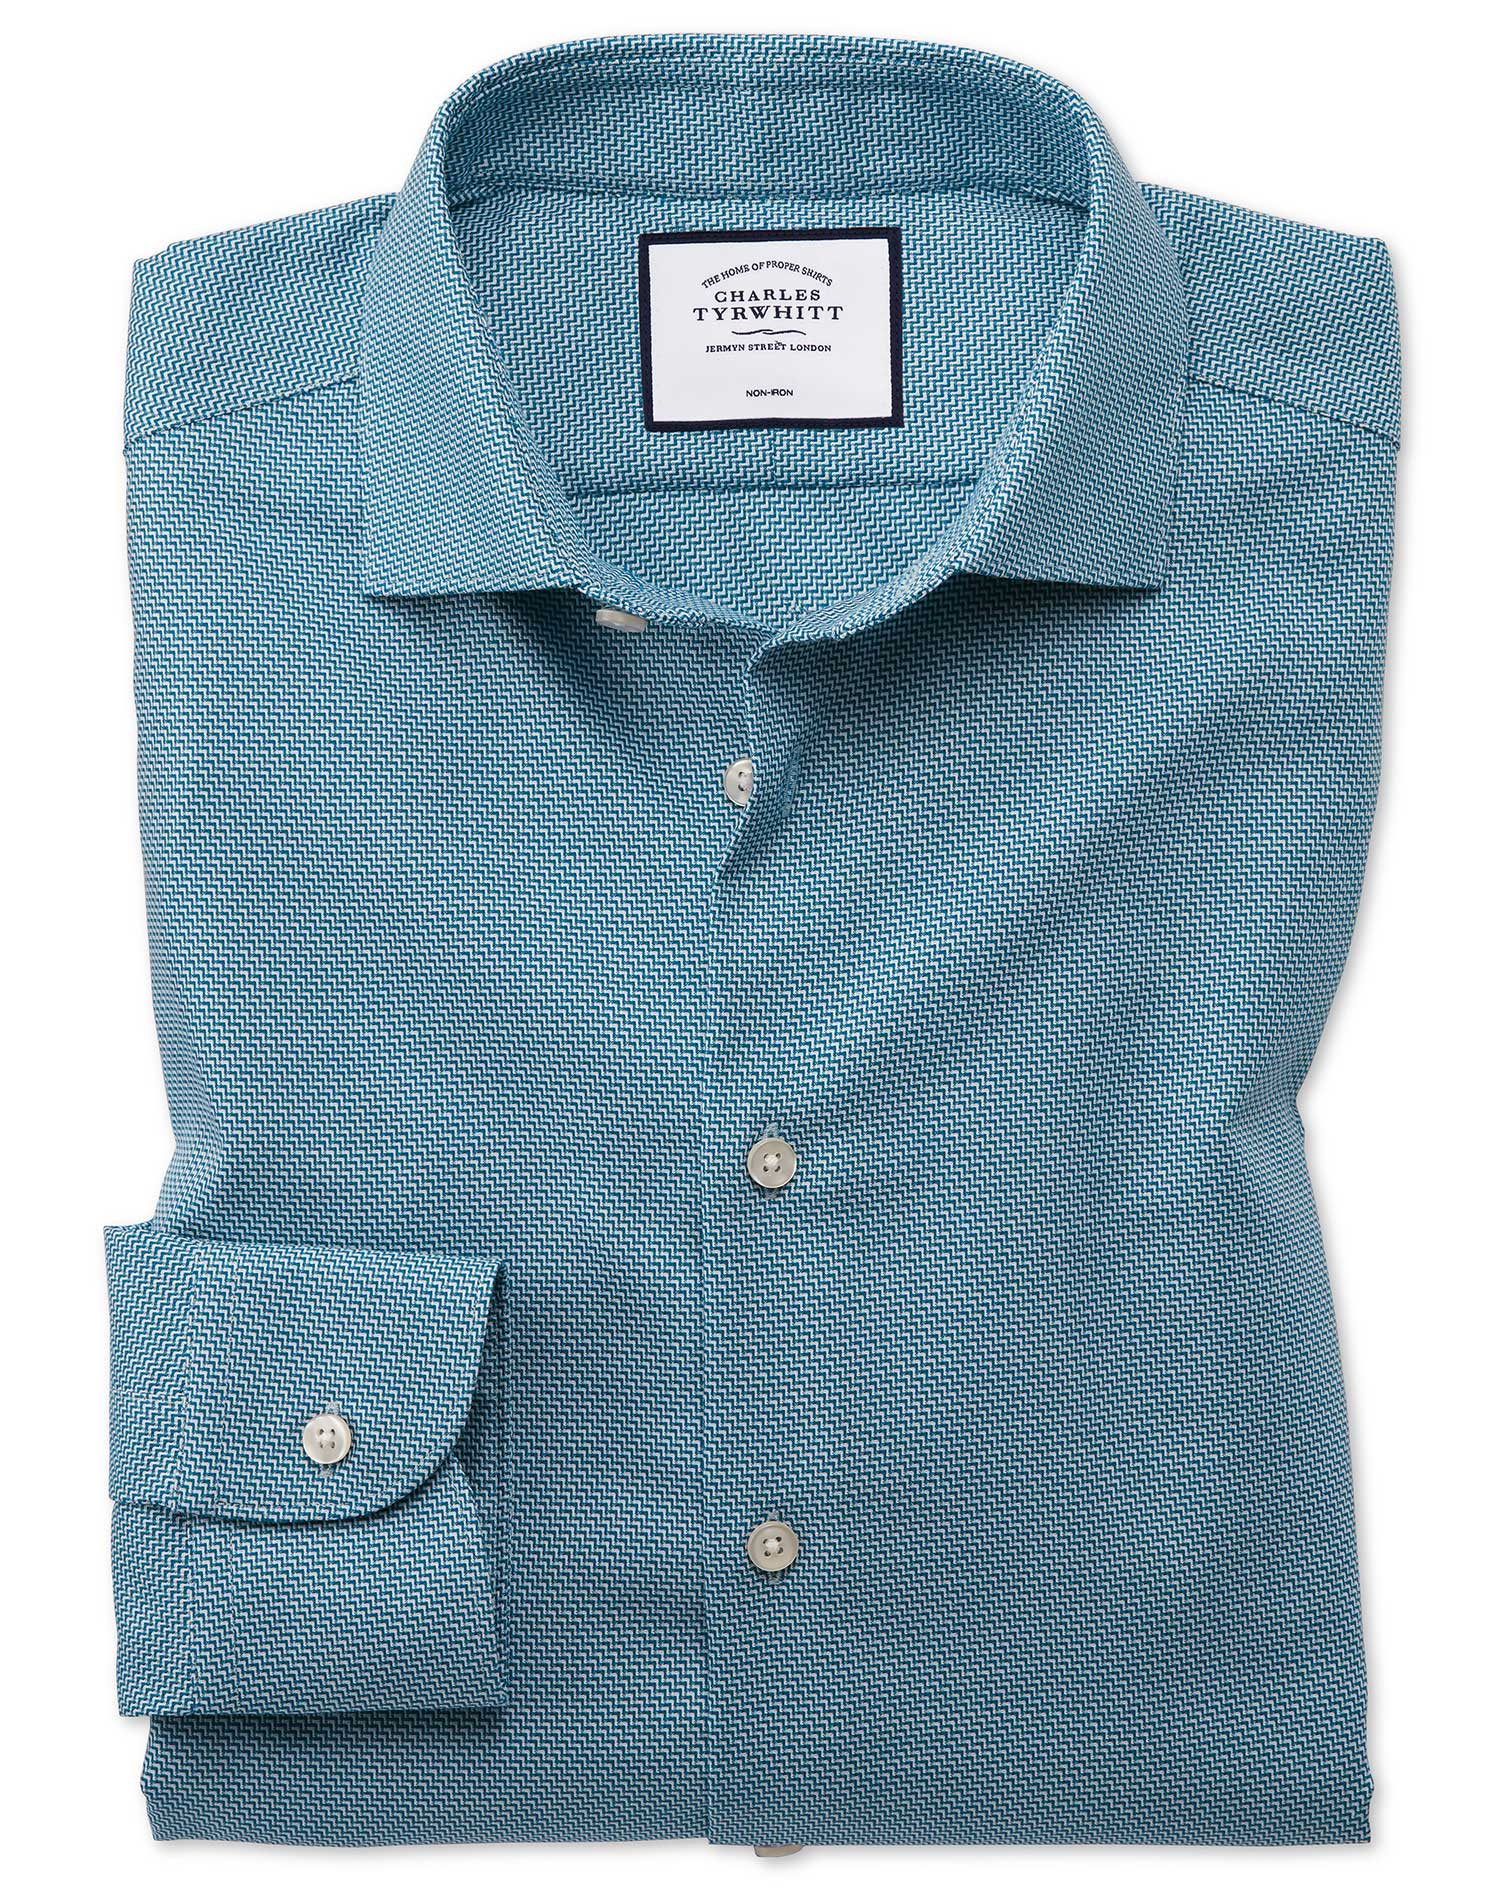 Extra Slim Fit Business Casual Non-Iron Wave Modern Texture Teal Cotton Formal Shirt Single Cuff Siz